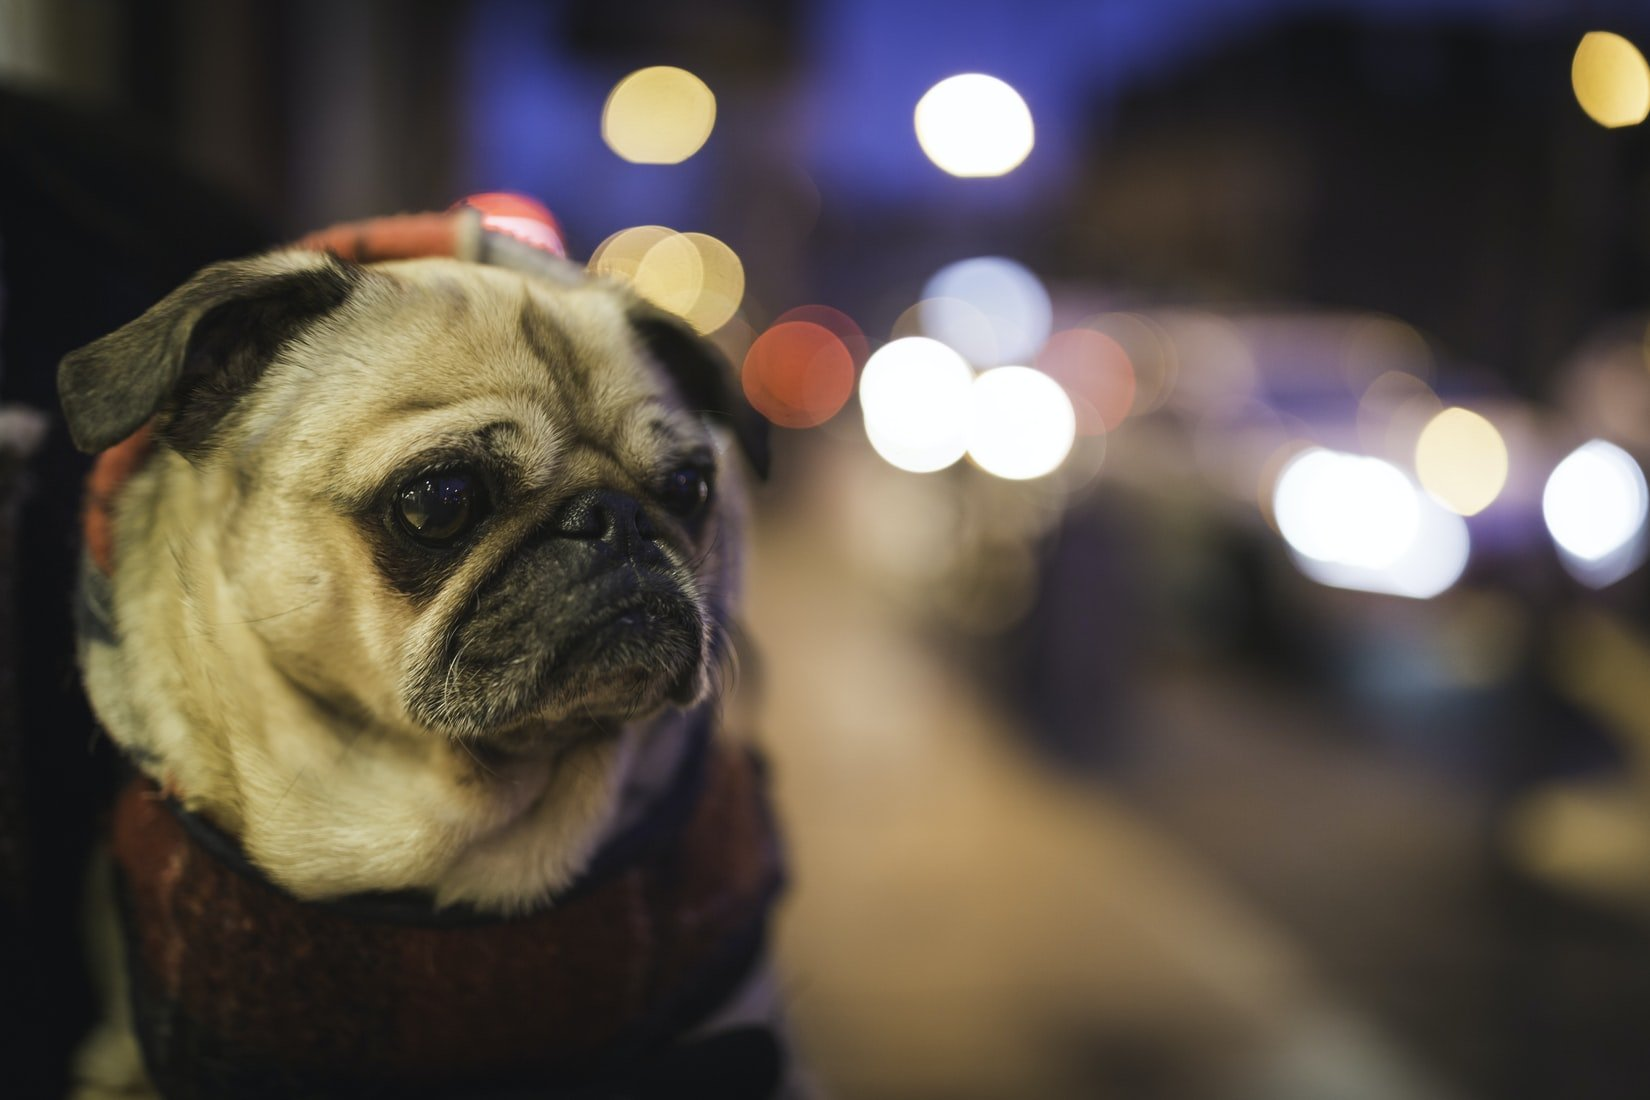 can pugs survive in the wild